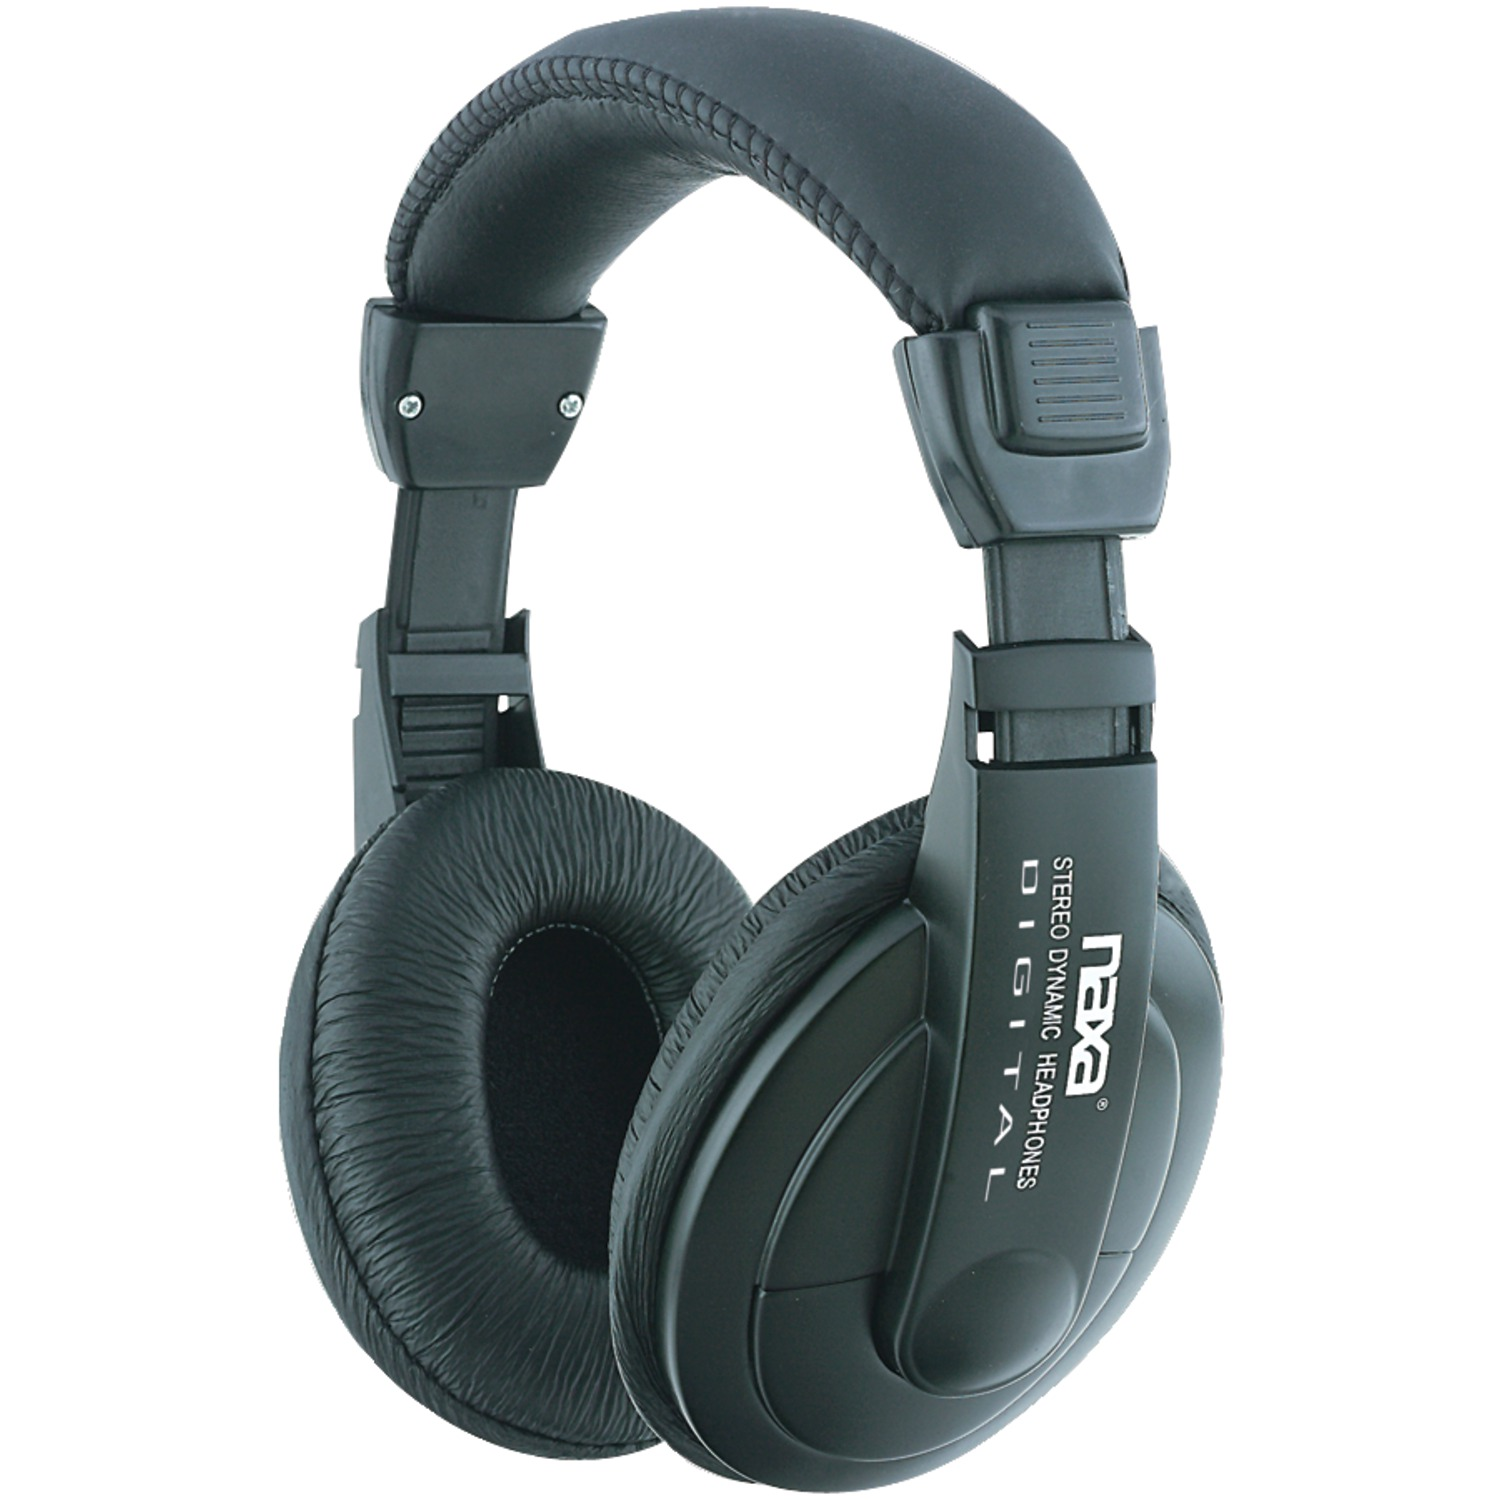 Naxa NE916 Super Bass Professional Digital Stereo Headphones with Volume Control